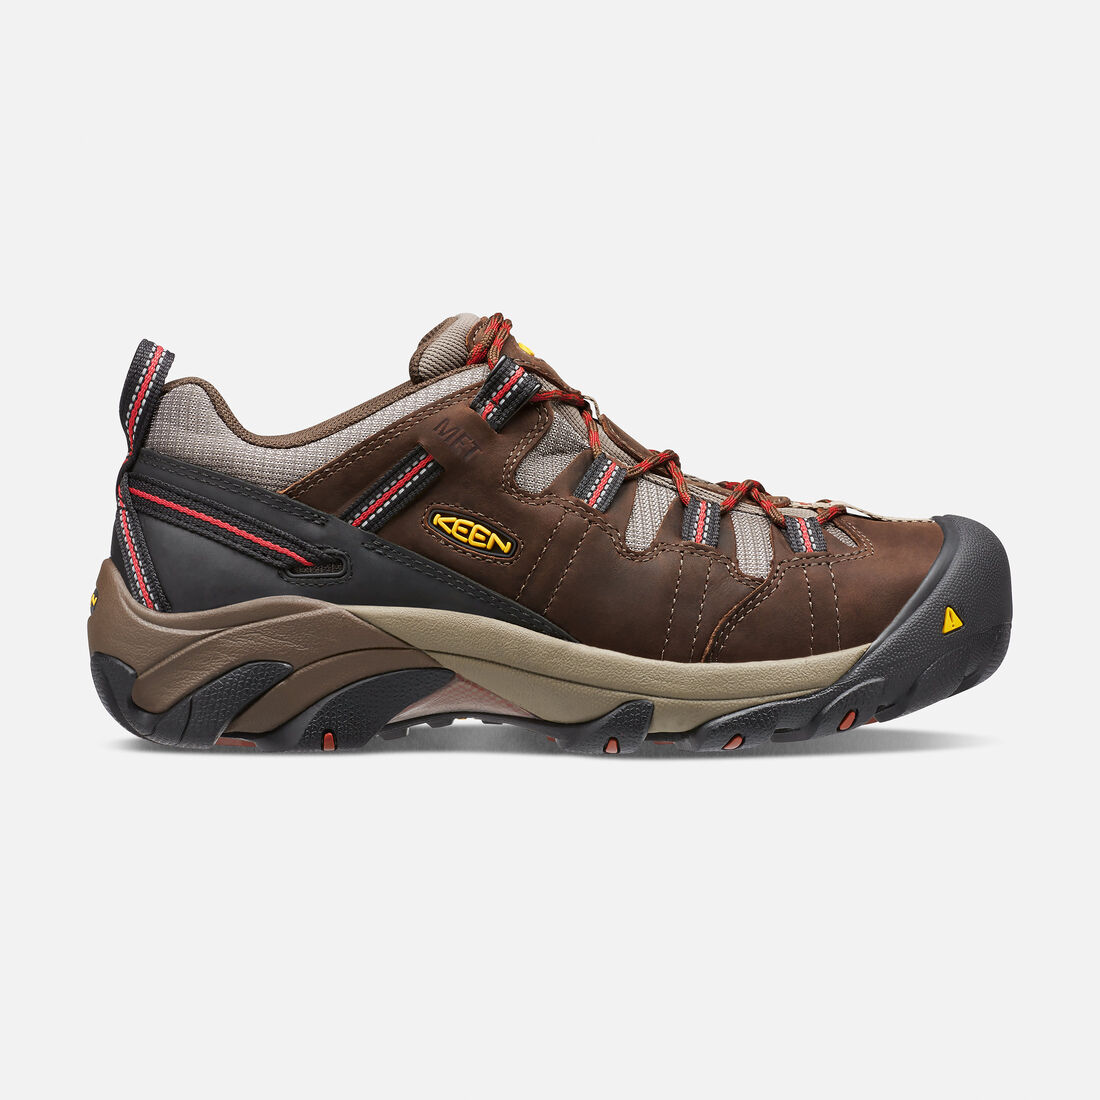 c65e23134ea Men's Detroit Low Work Shoes with Internal Met Guard | KEEN Footwear